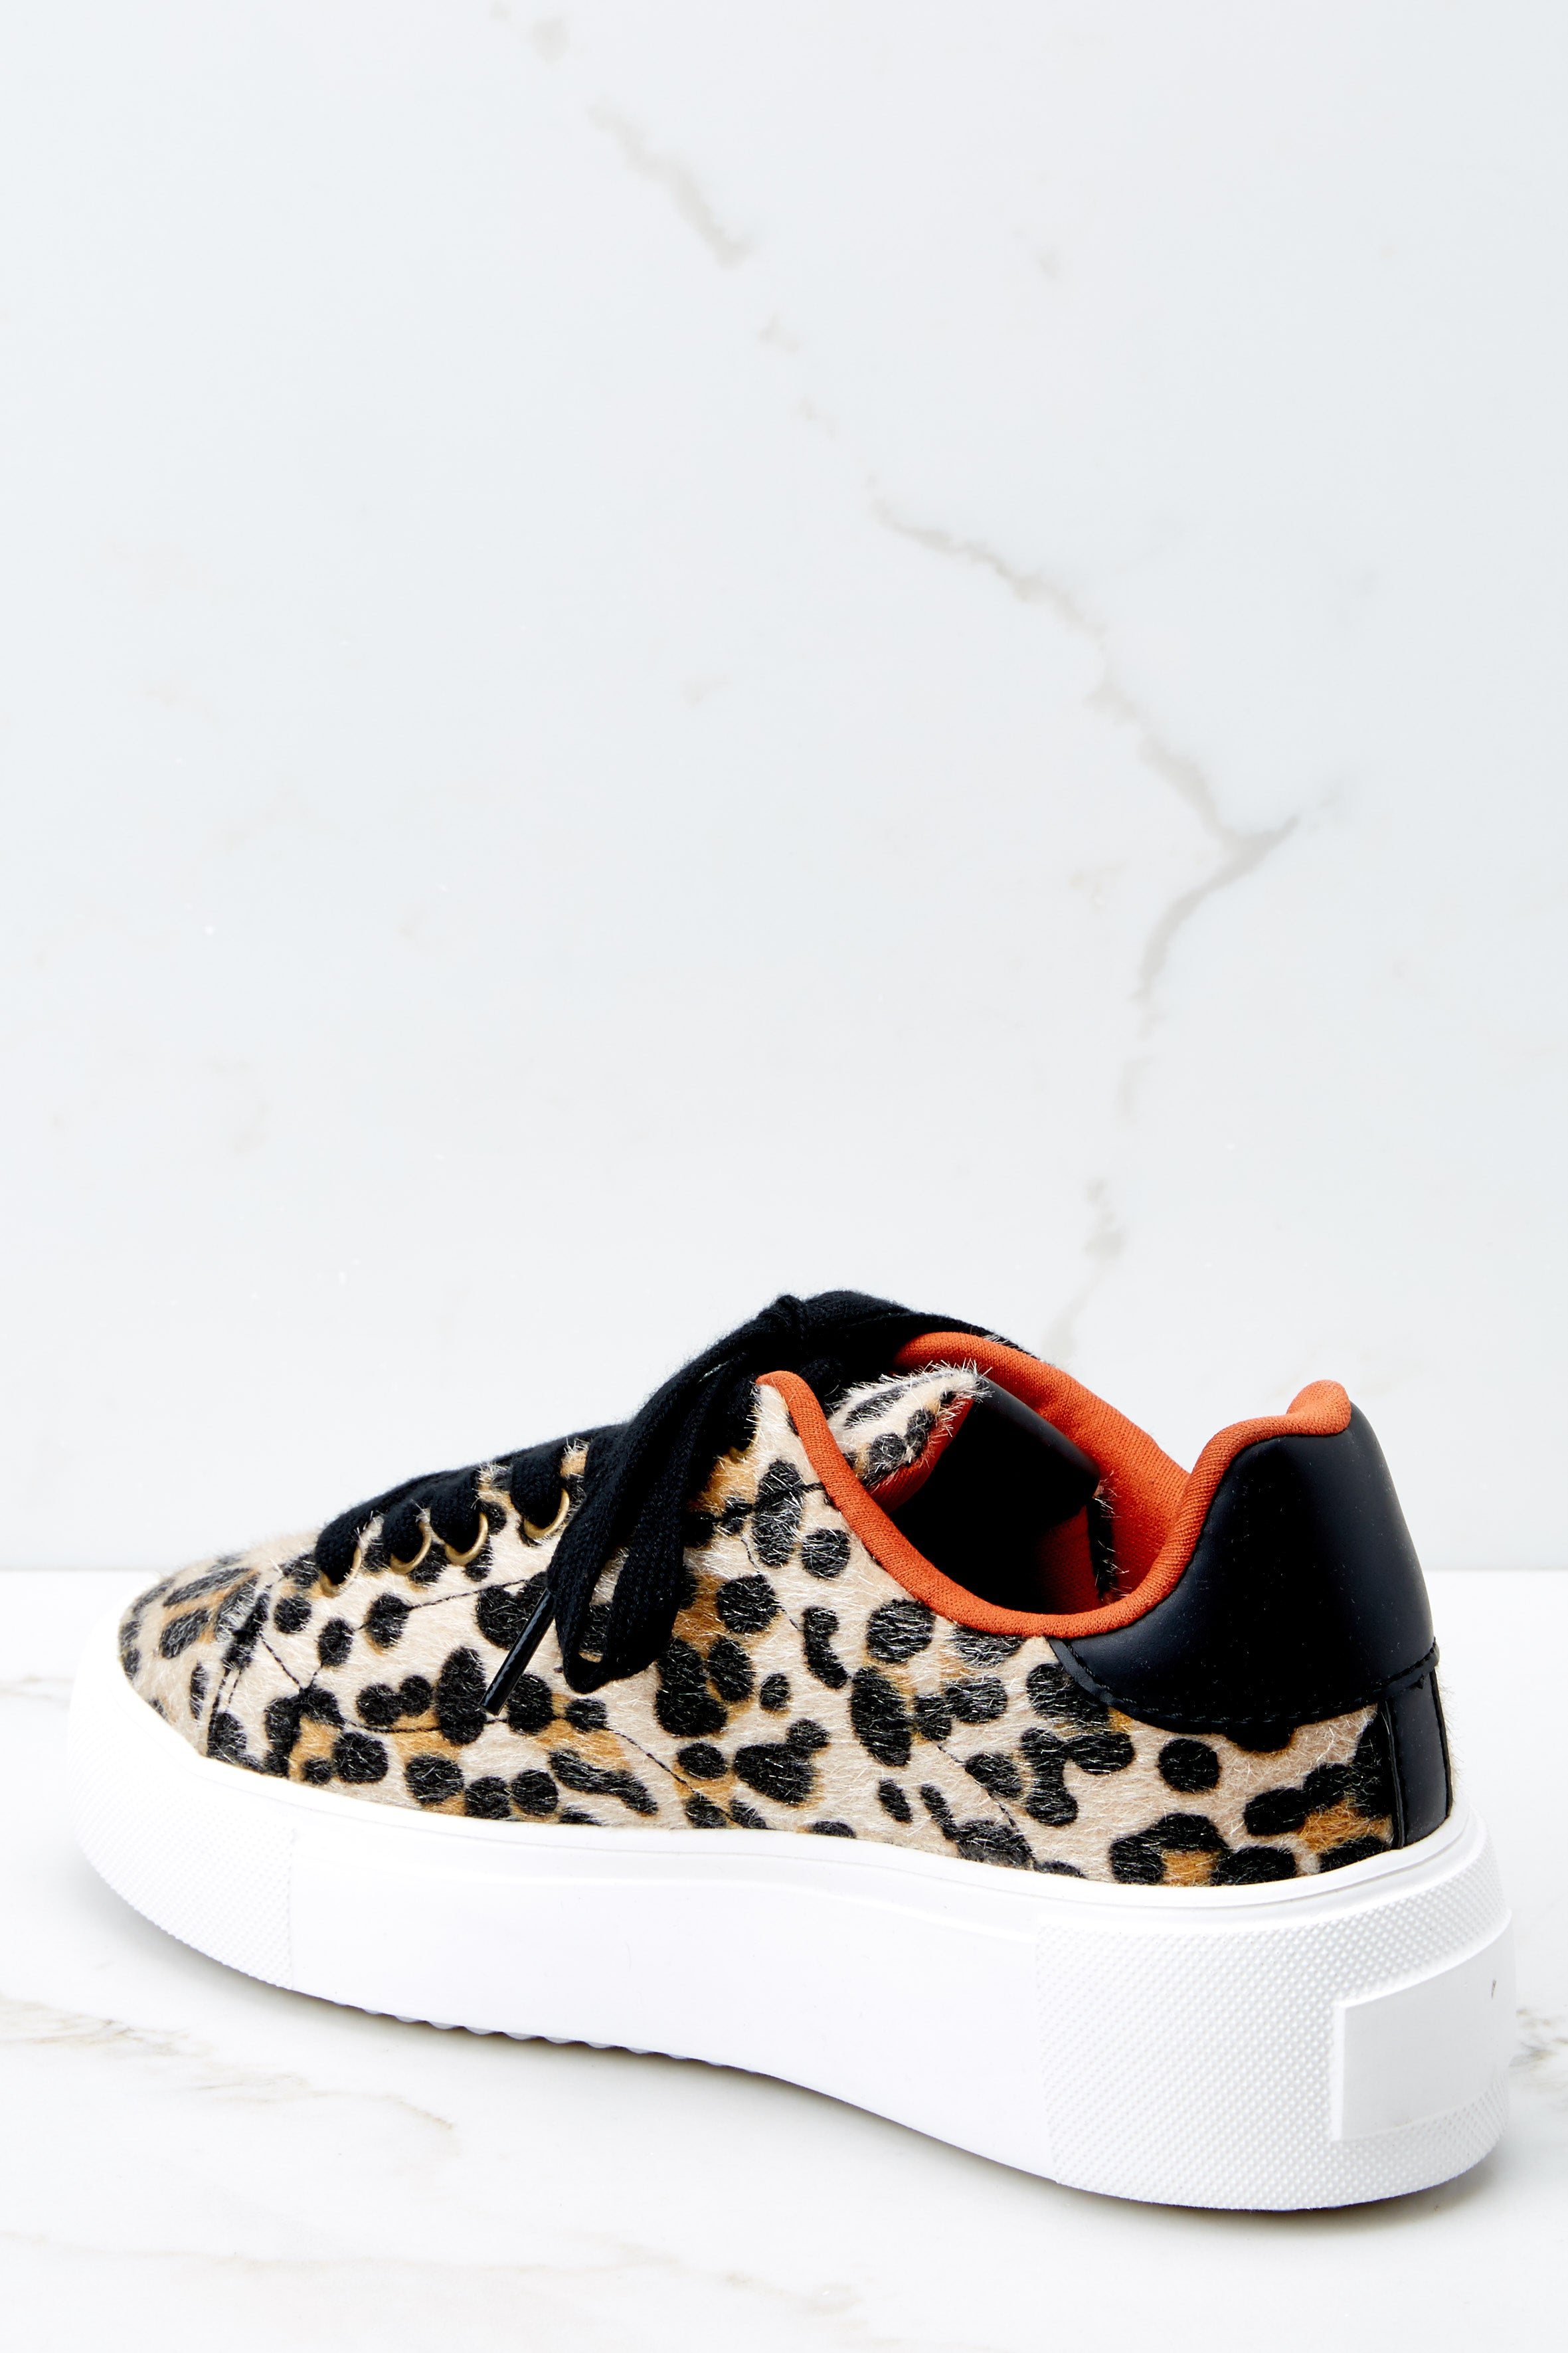 3 Race You There Leopard Print Sneakers at reddressboutique.com